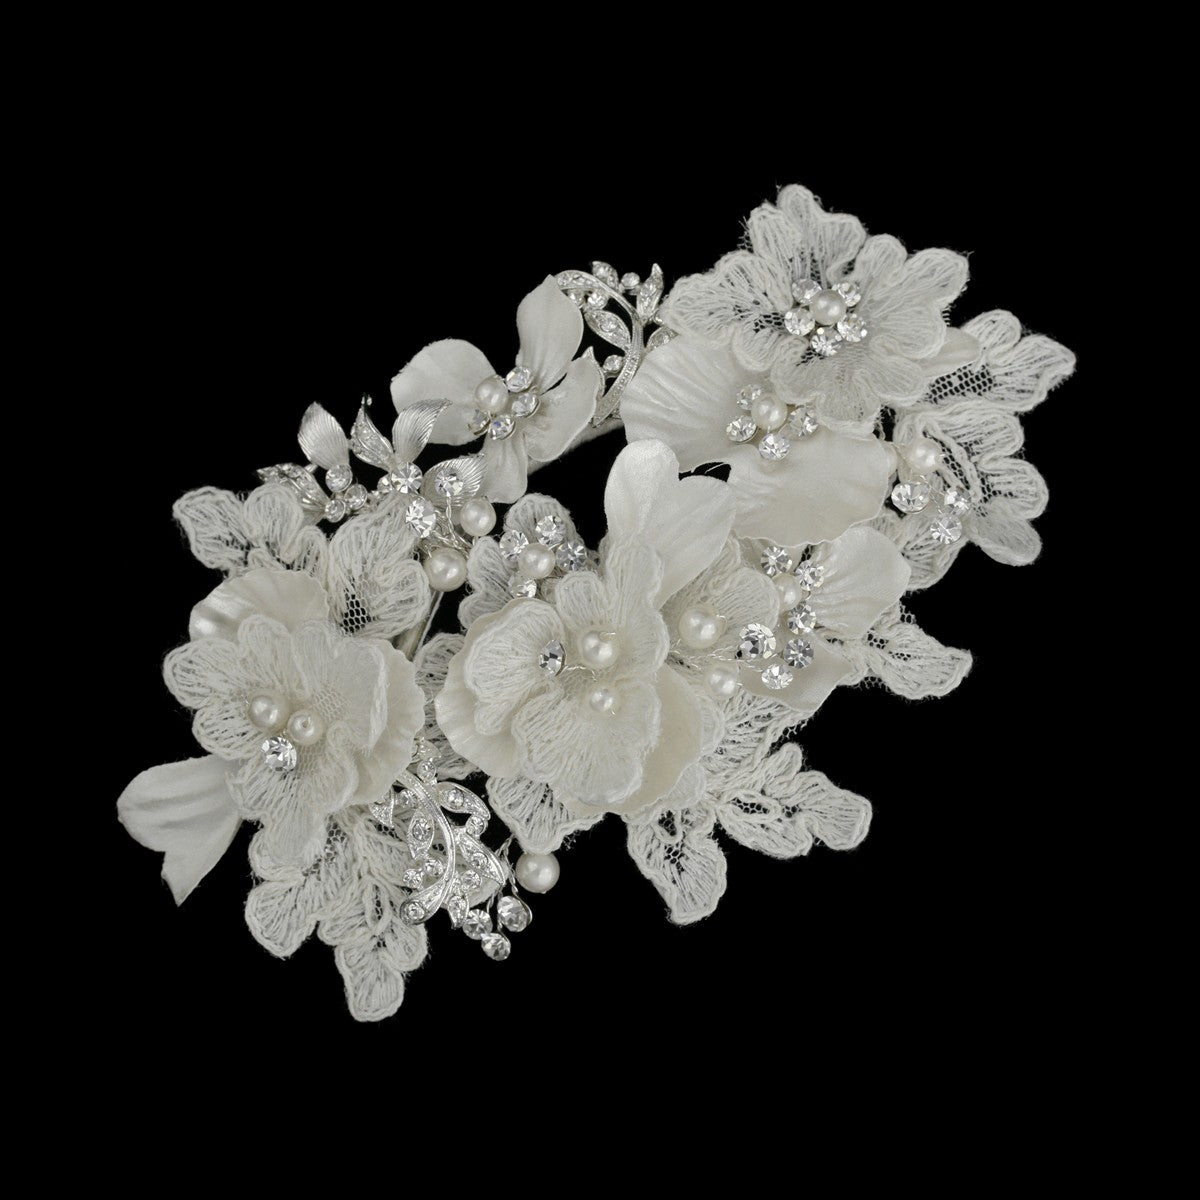 Elvera Bridal Hair Piece - LAST OF - DISCONTINUED - WILL NOT BE RESTOCKED